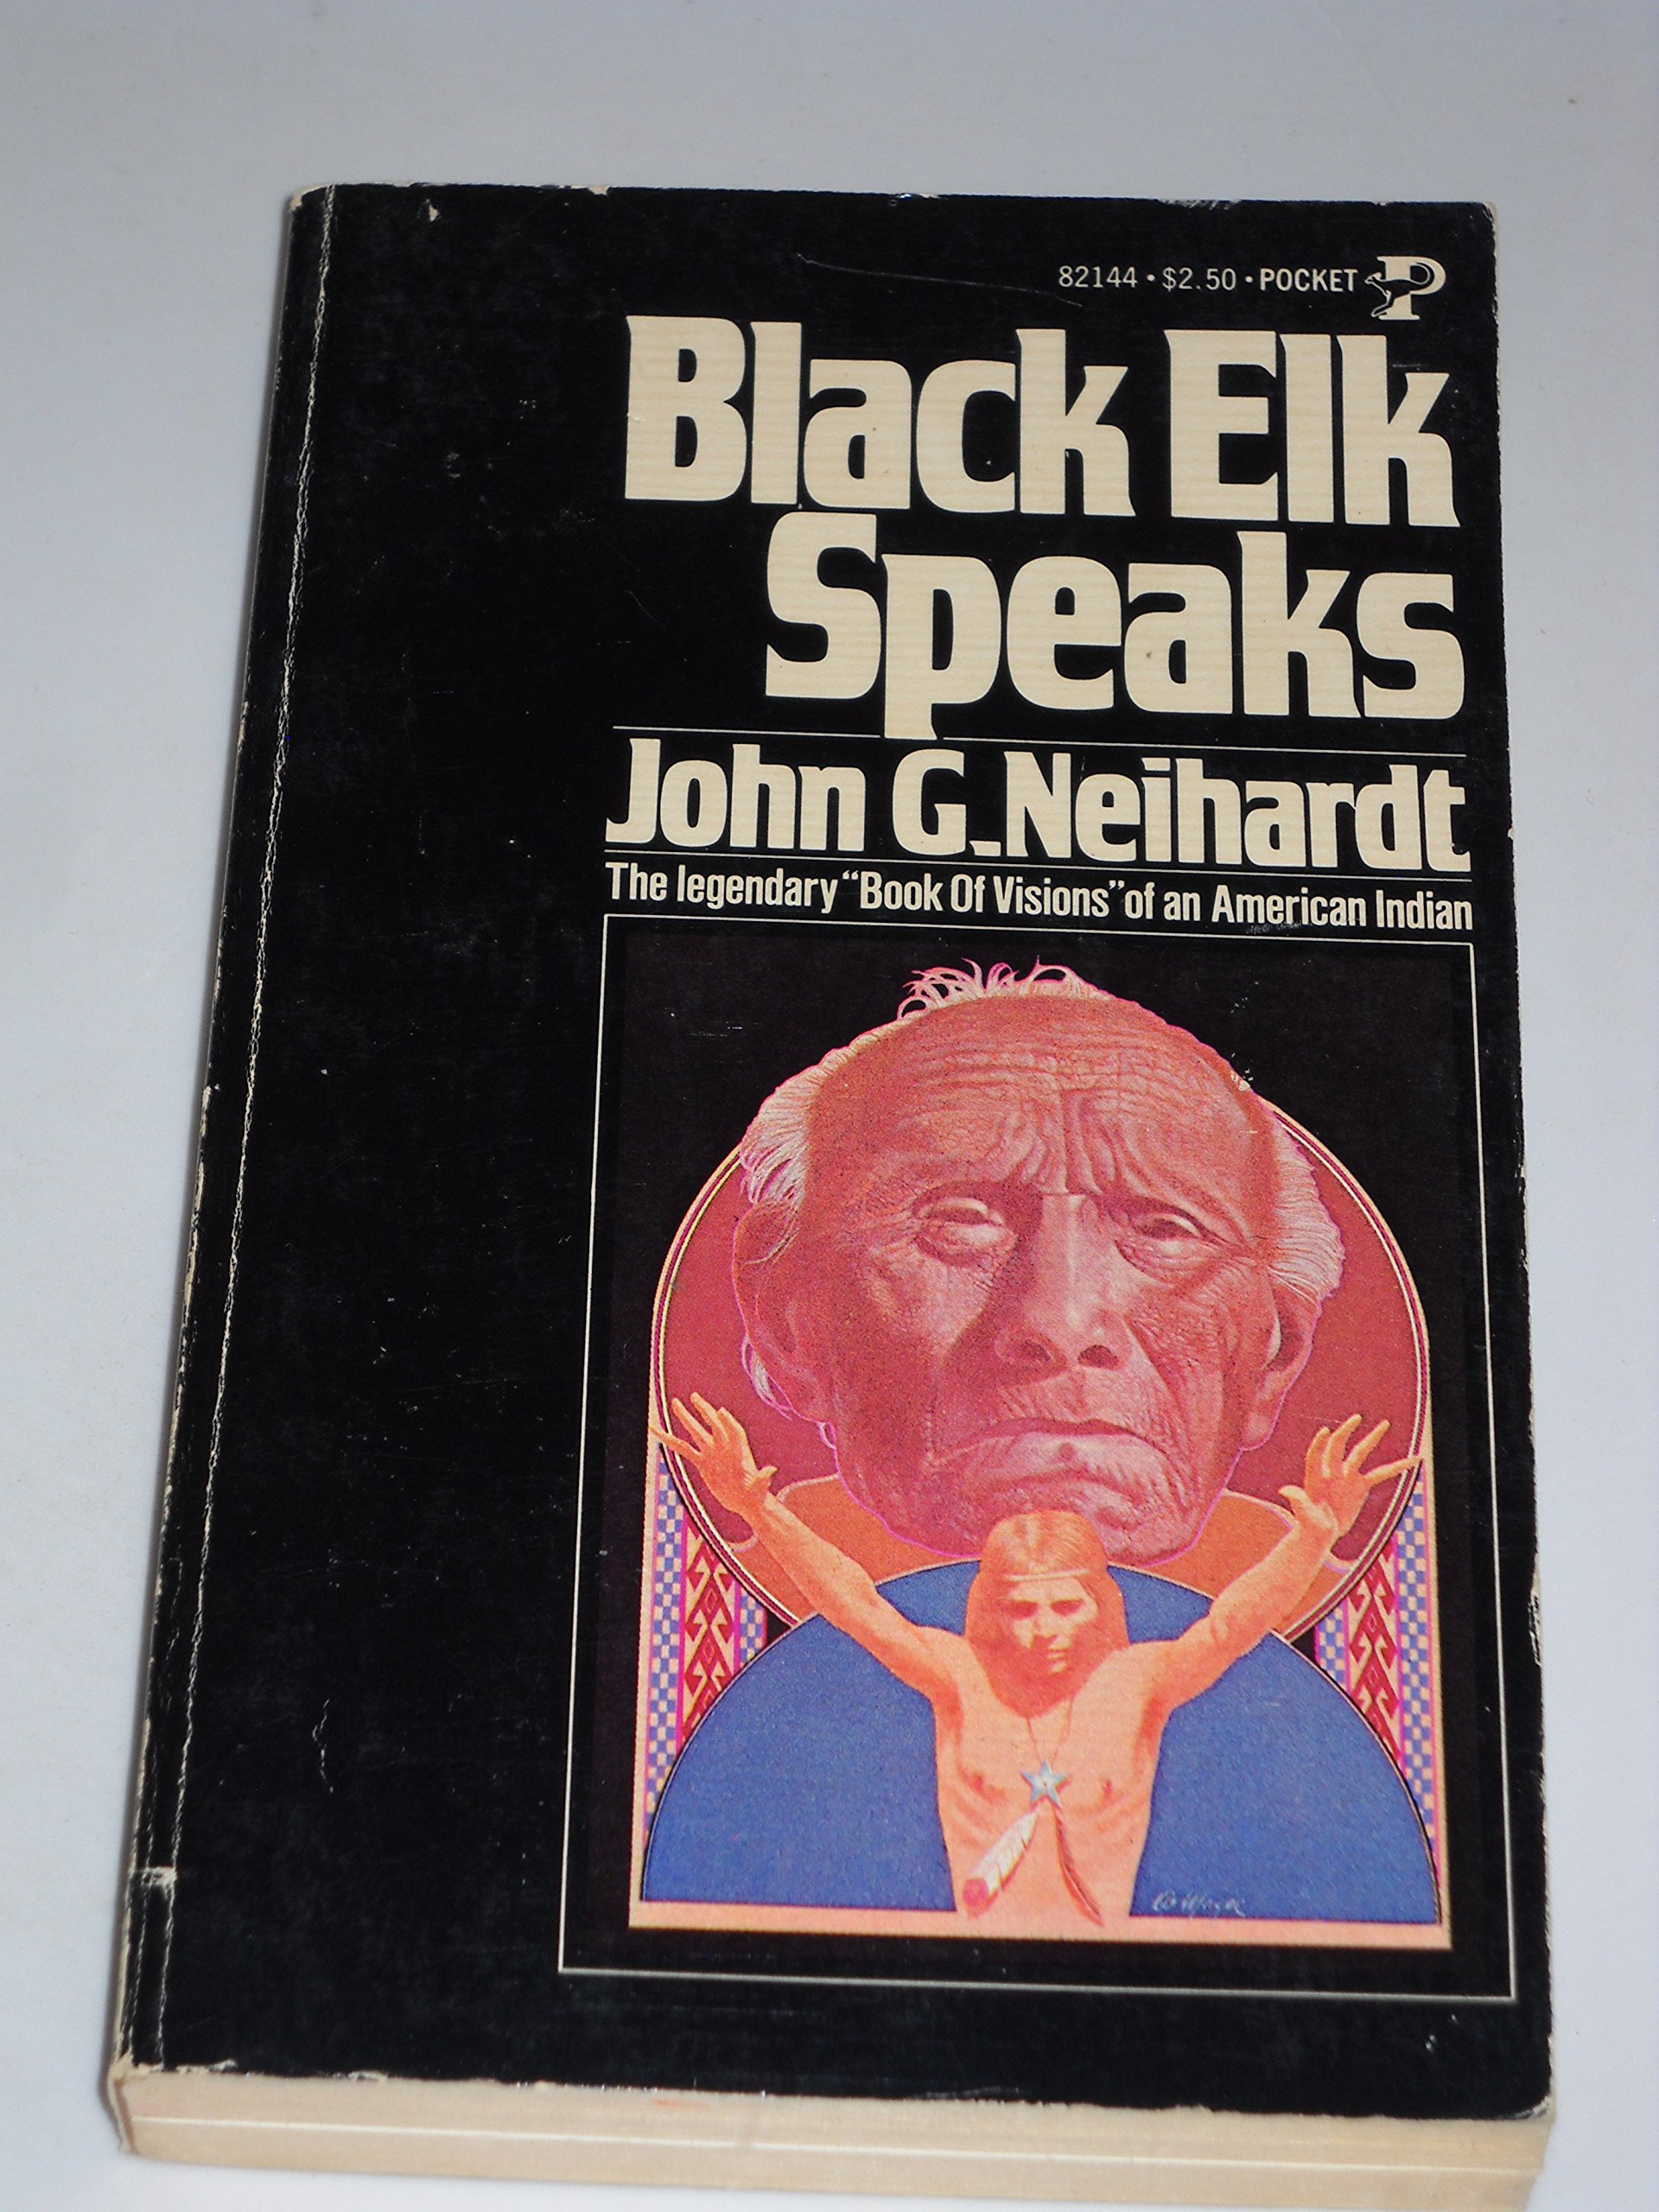 Black Elk Speaks, John G. Neihardt